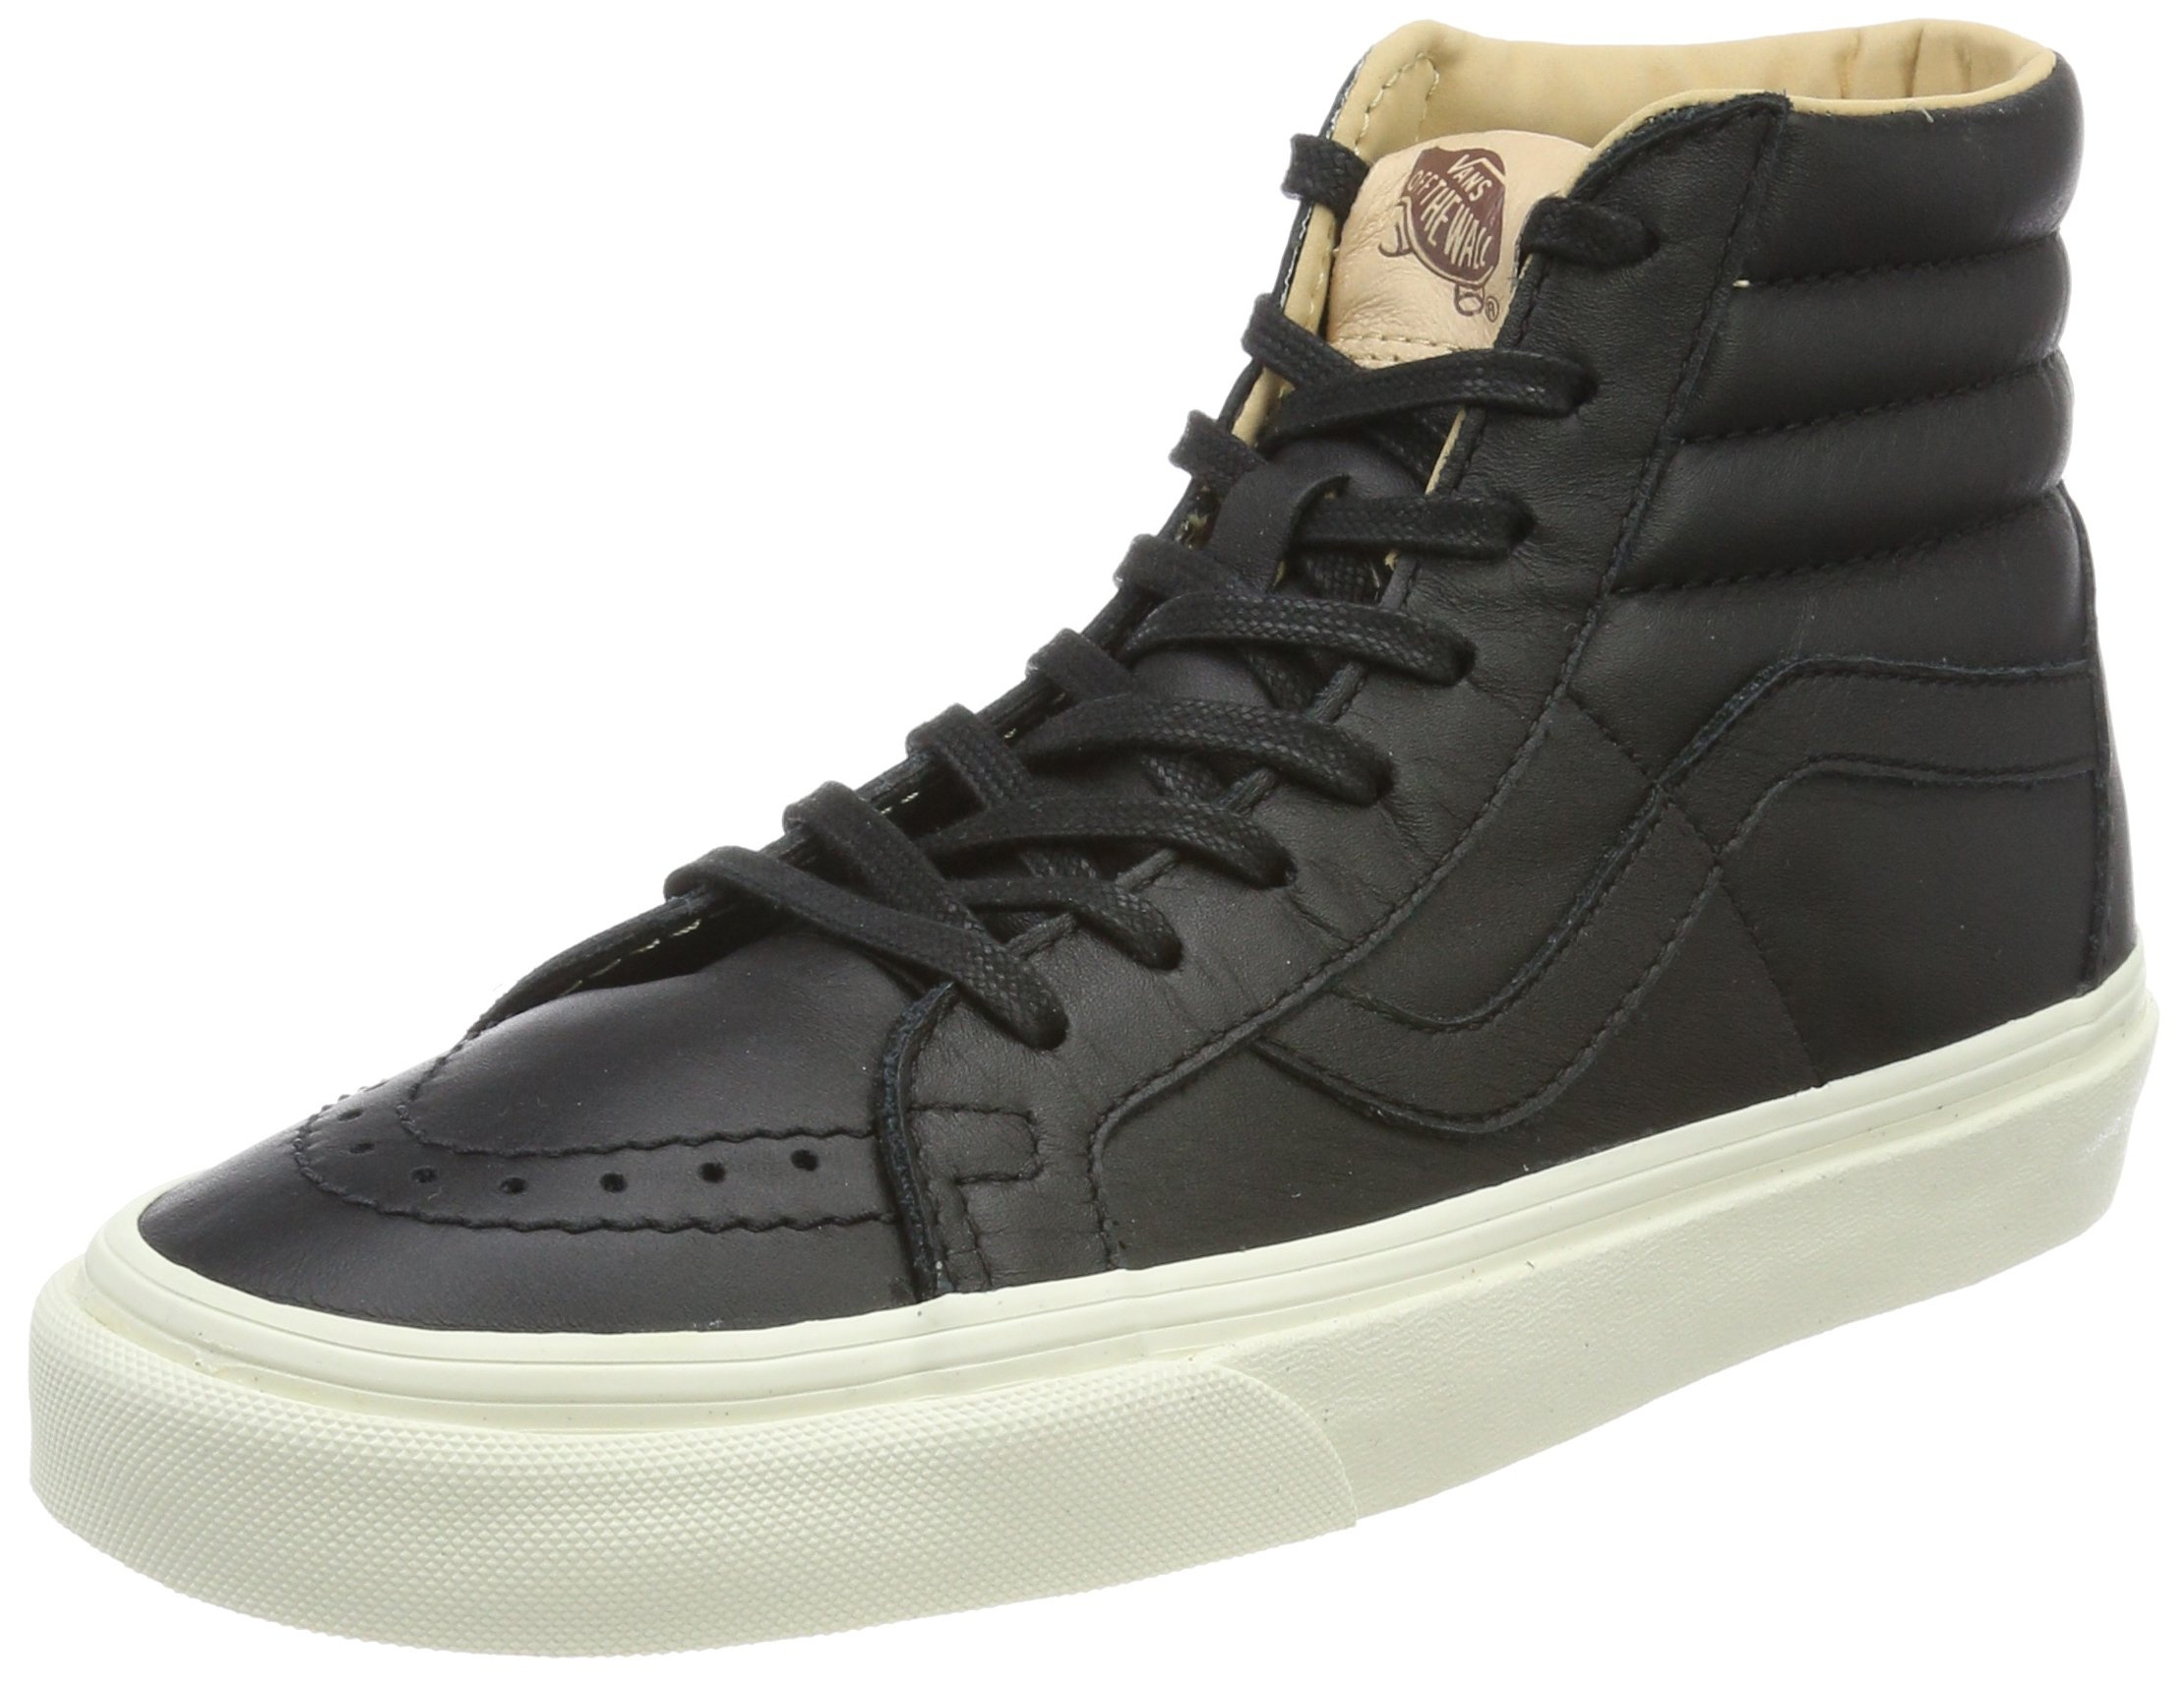 6b37e493a417 Galleon - Vans Unisex Adults  Sk8-Hi Reissue Leather Trainers